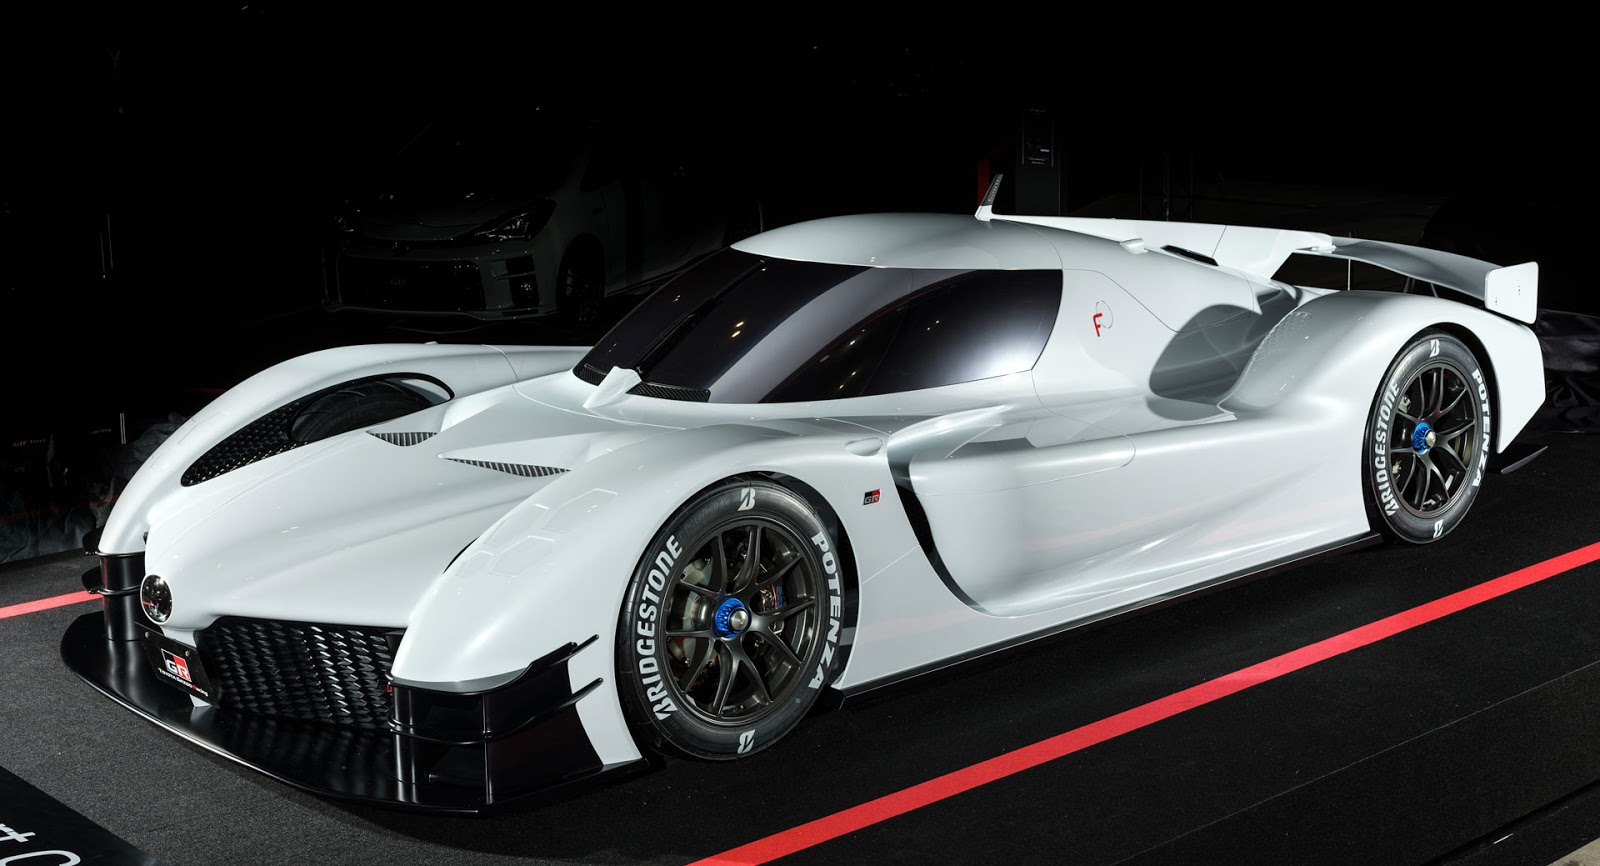 Toyota's made a Le Mans auto  for the road